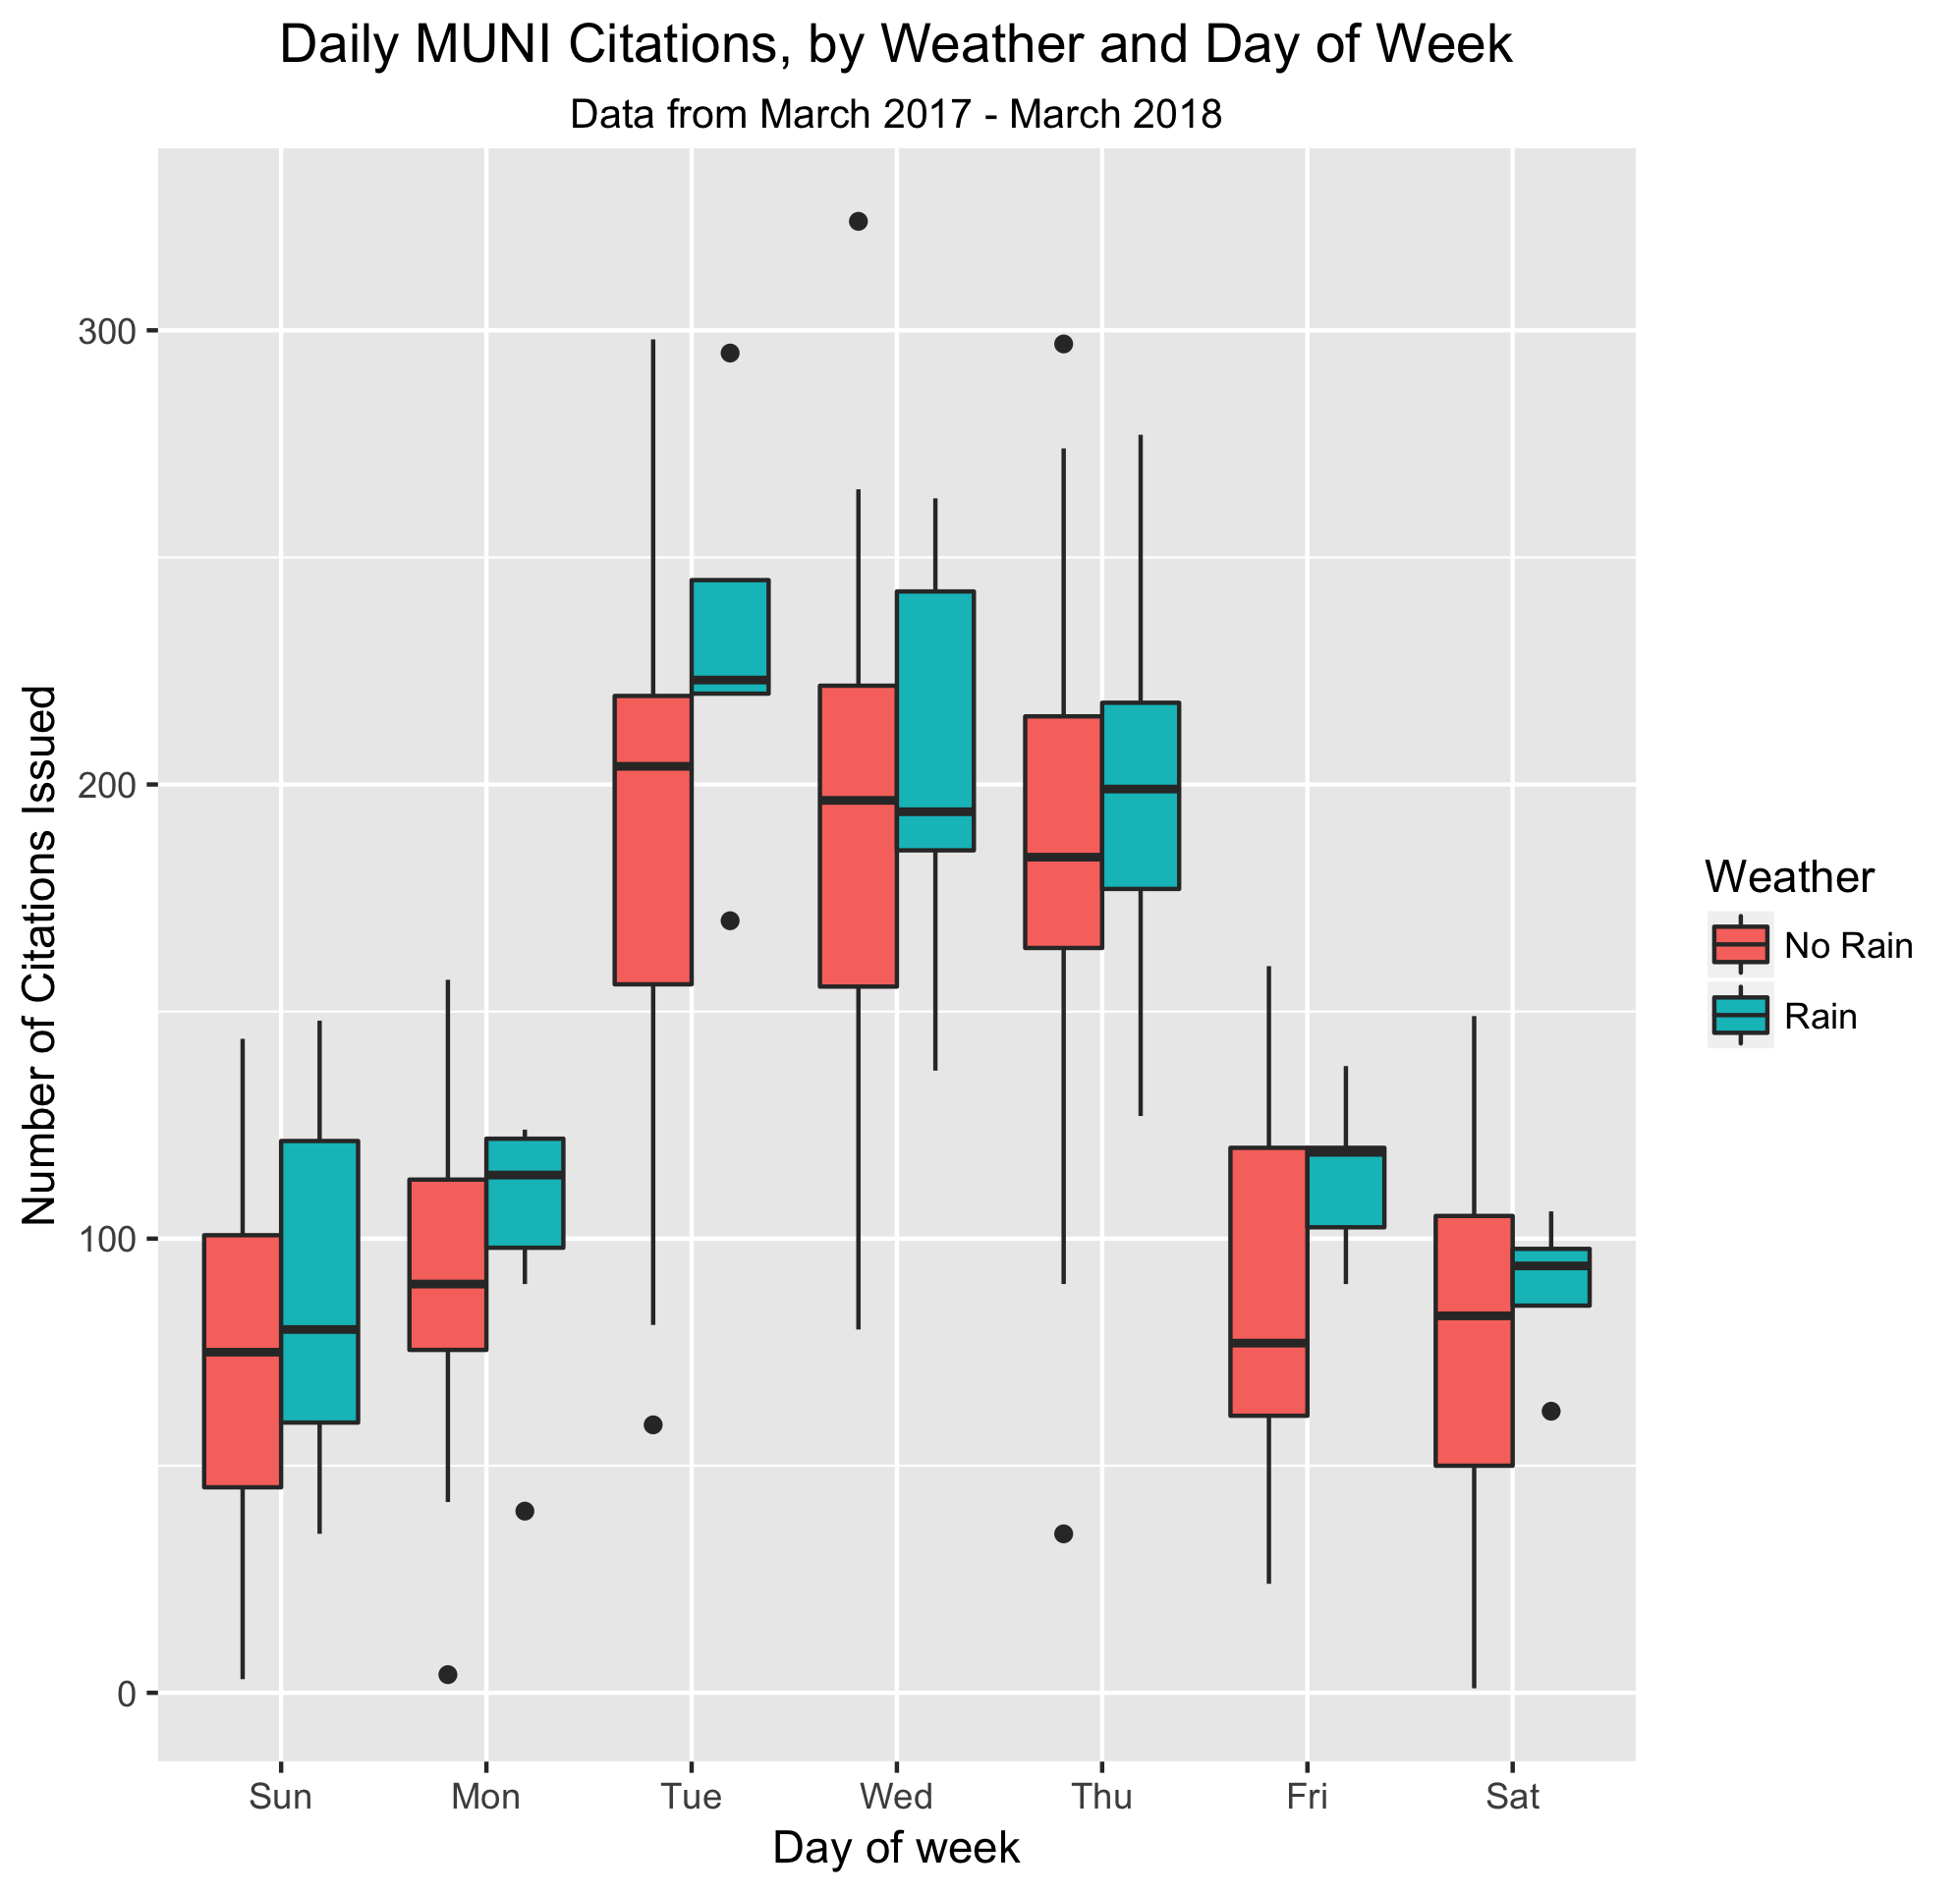 Citations by day of week, weather